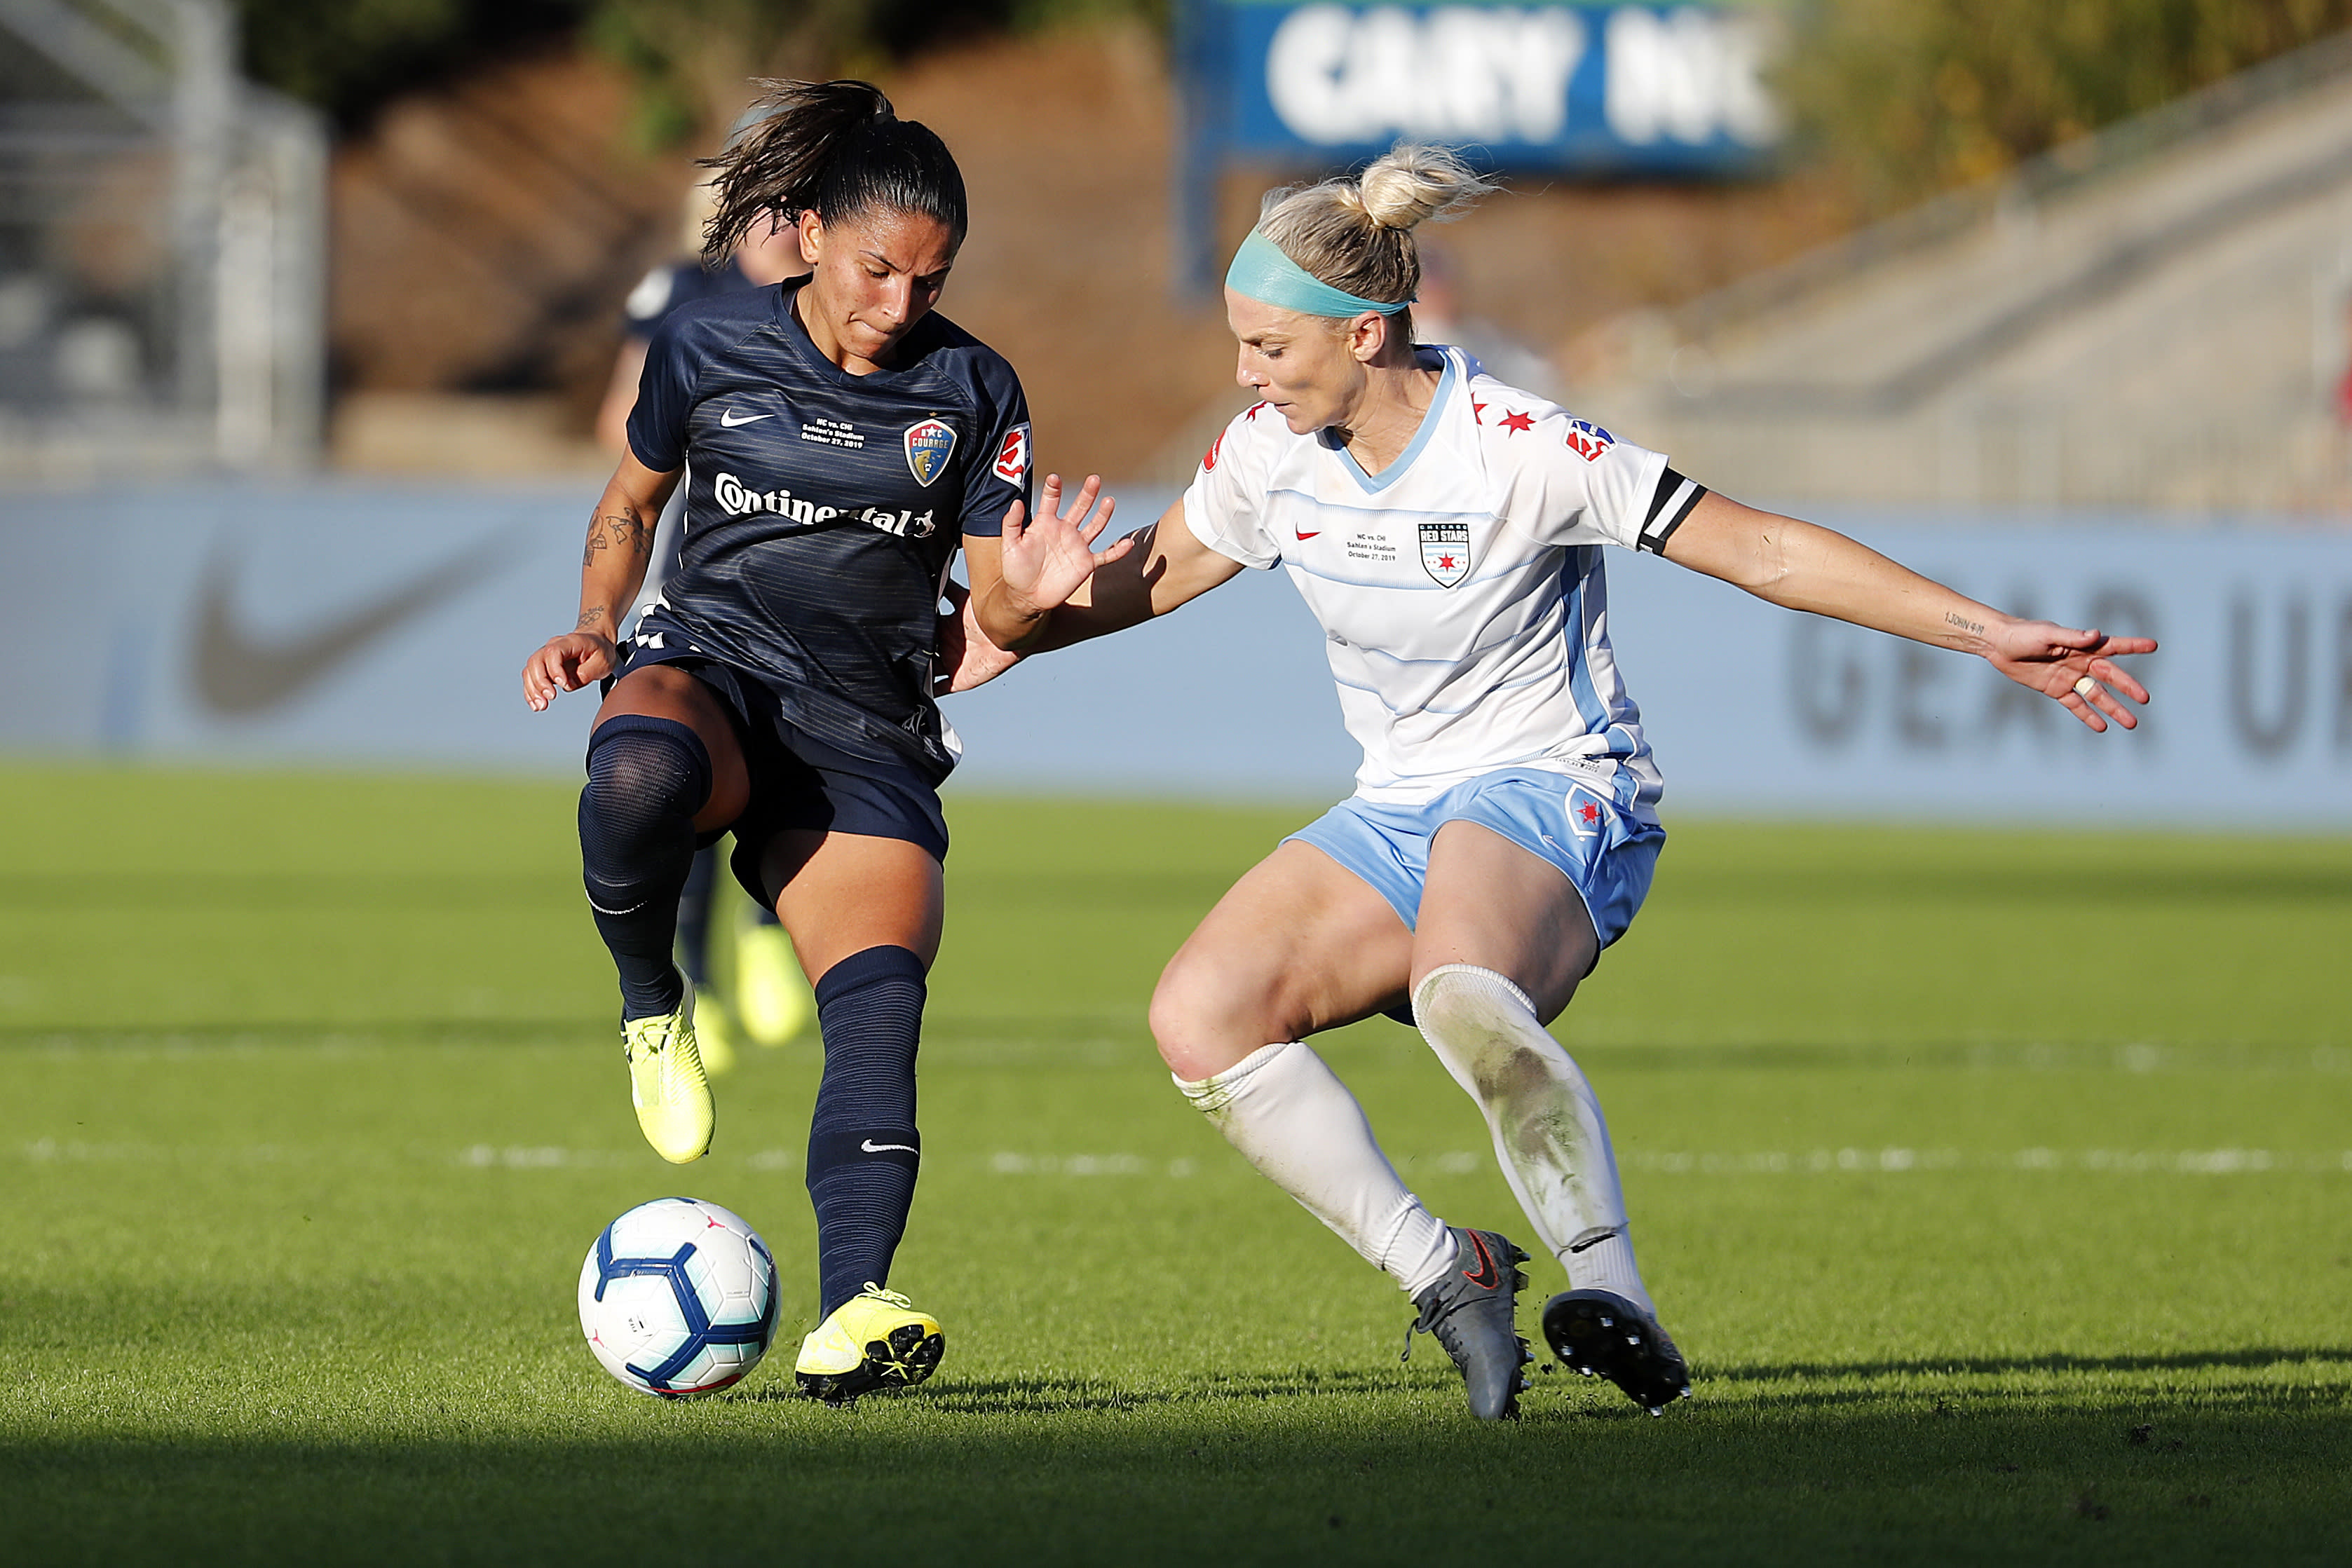 Report: USL looks to launch women's league rivaling NWSL, bring in USWNT players